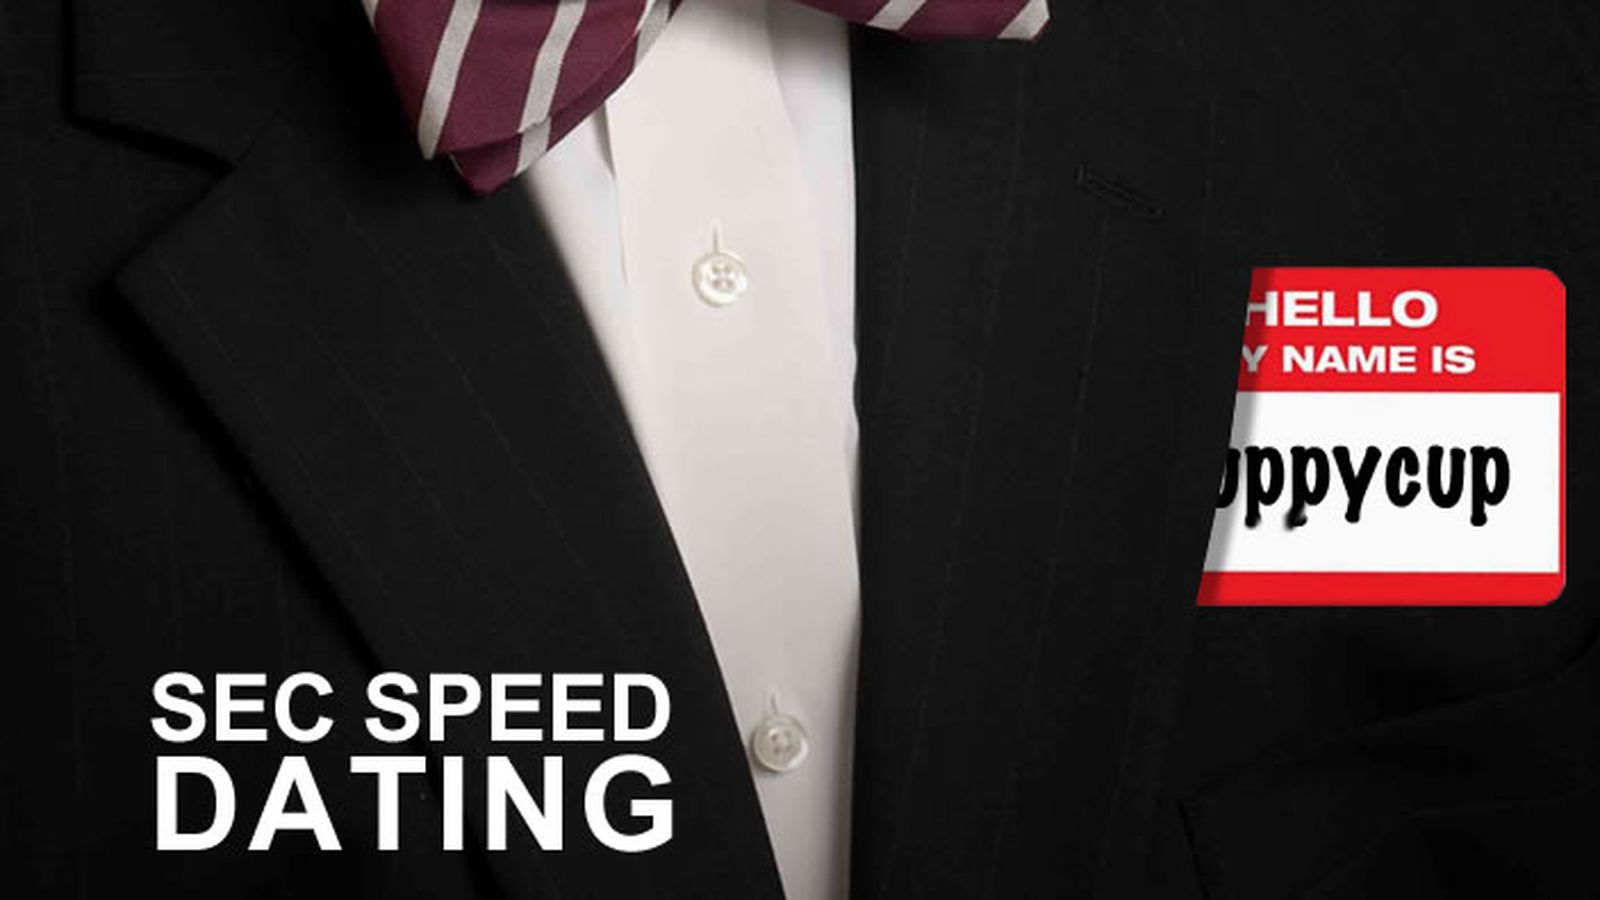 speed dating huddersfield Many of our members find someone special dating in huddersfield getting you nowhereit might be time to try a different approach spice is the uk's largest adventure, social and leisure group.